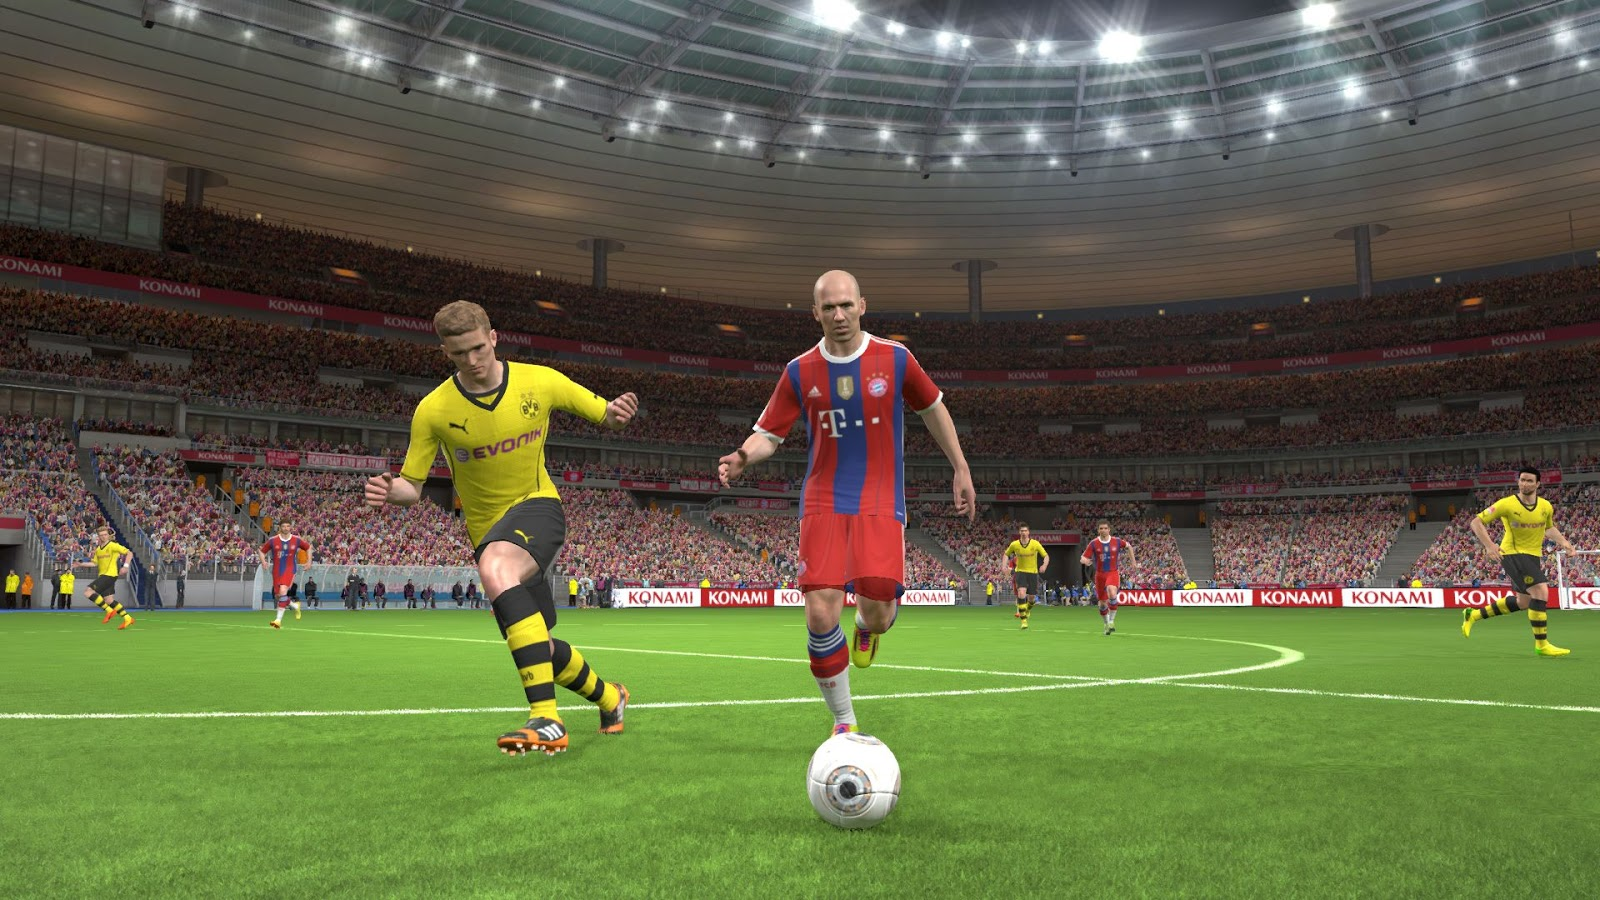 Pin Team Released Pesedit 2013 Demo Patch V10 For New Pes on Pinterest